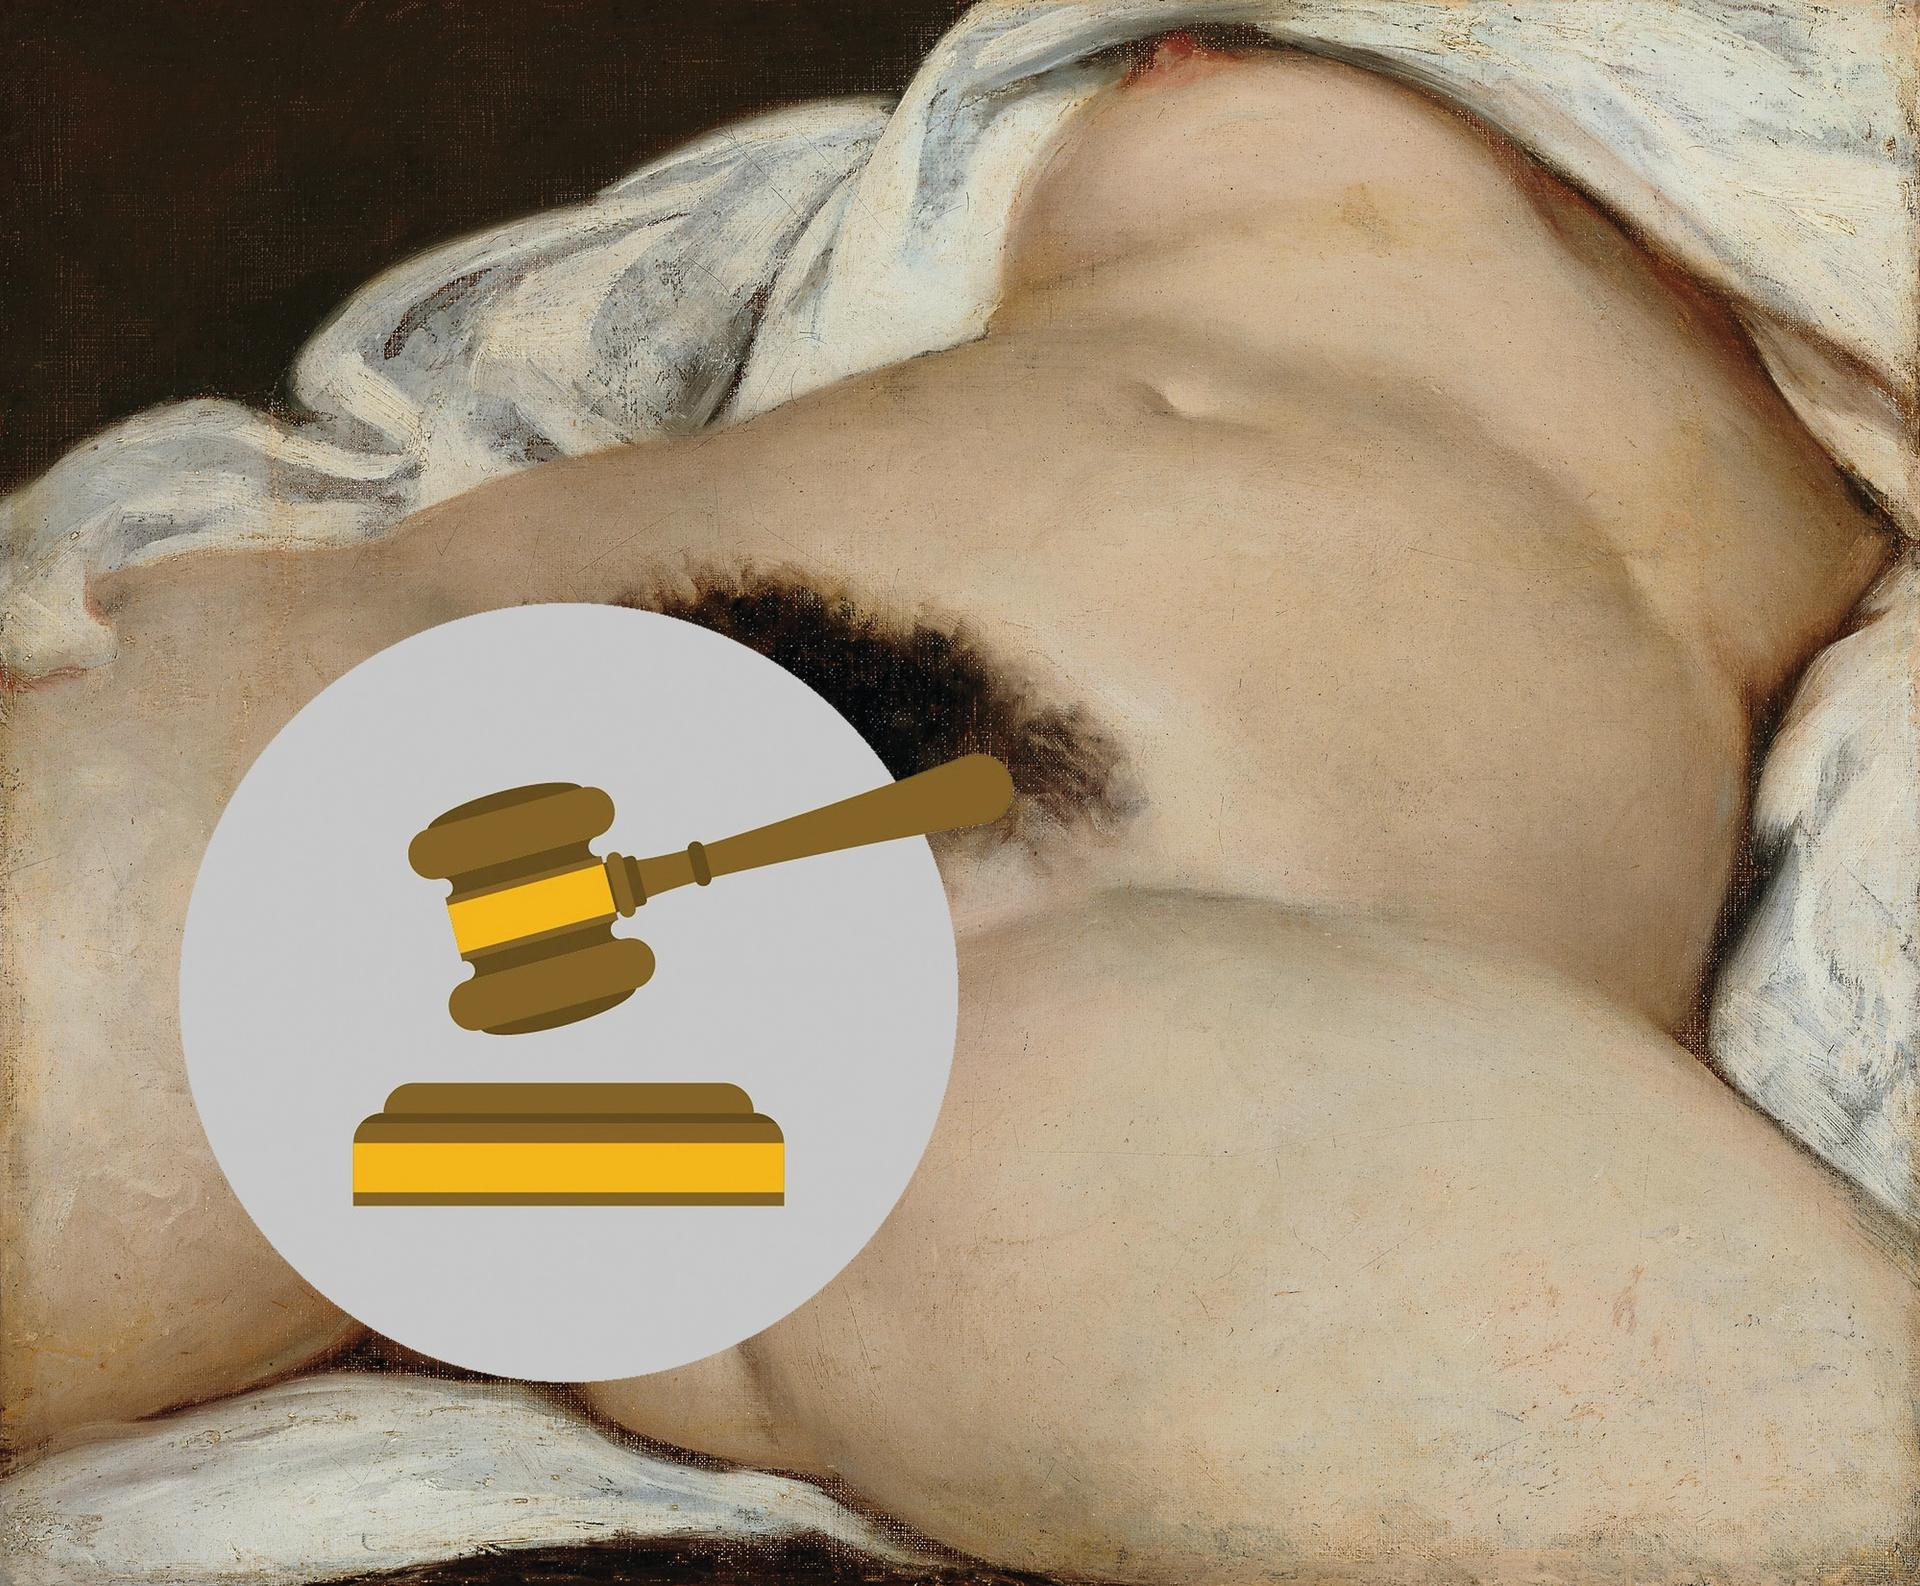 """Durand's claim that Facebook closed his account because he posted an image of Courbet's L'Origine du monde was  """"unfounded"""", the French court says"""